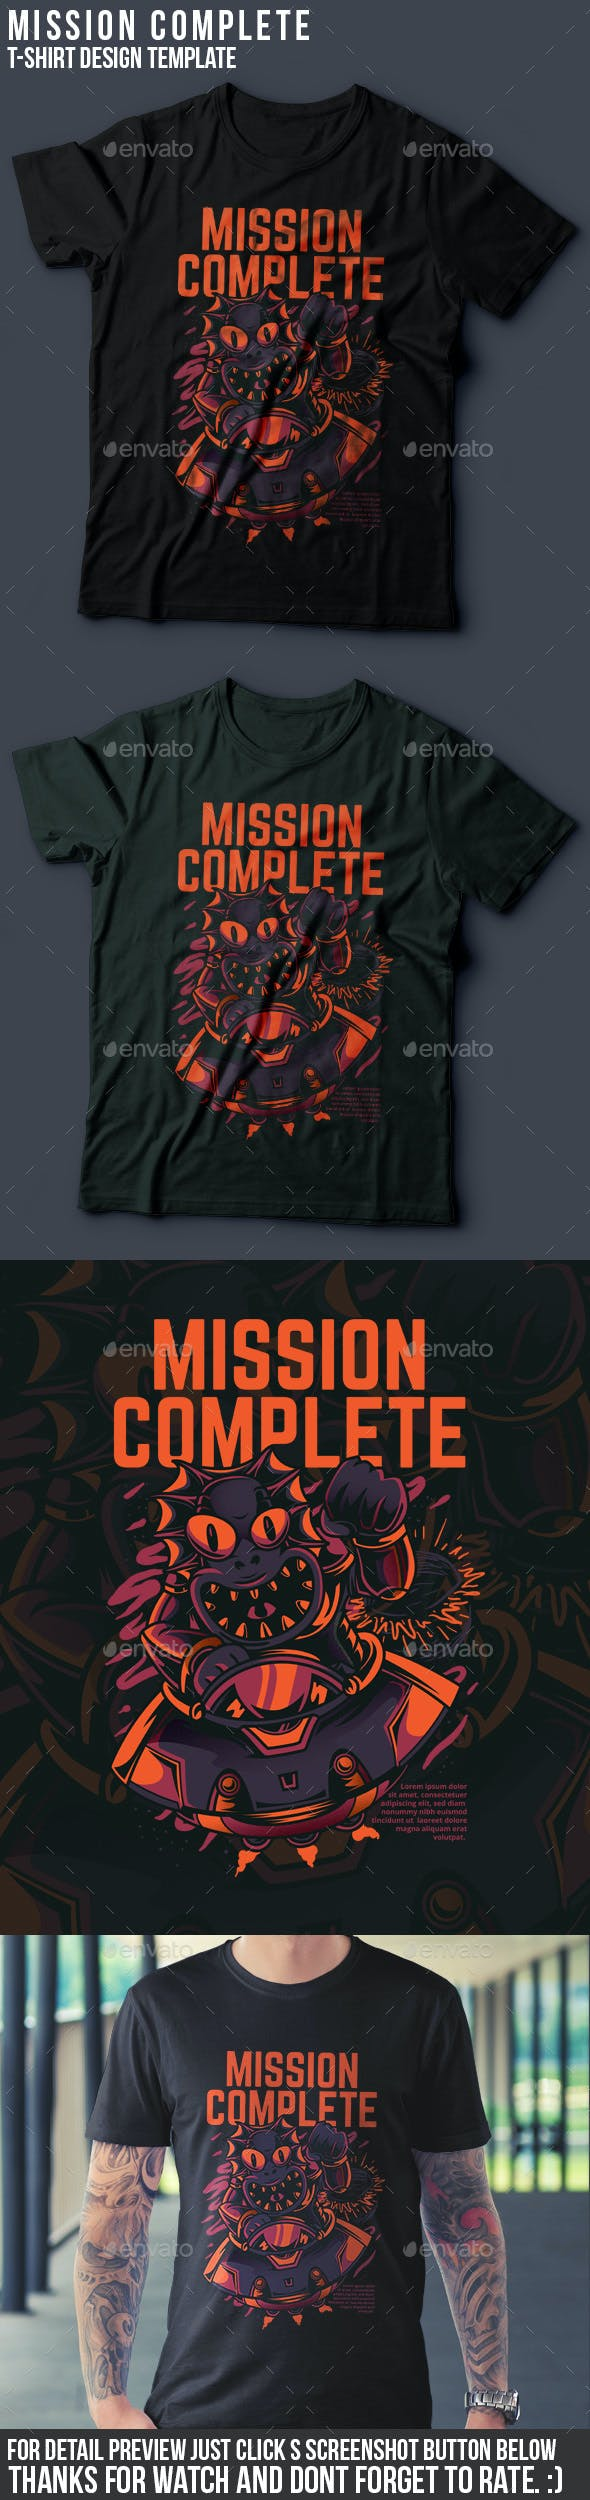 Mission Complete T-Shirt Design